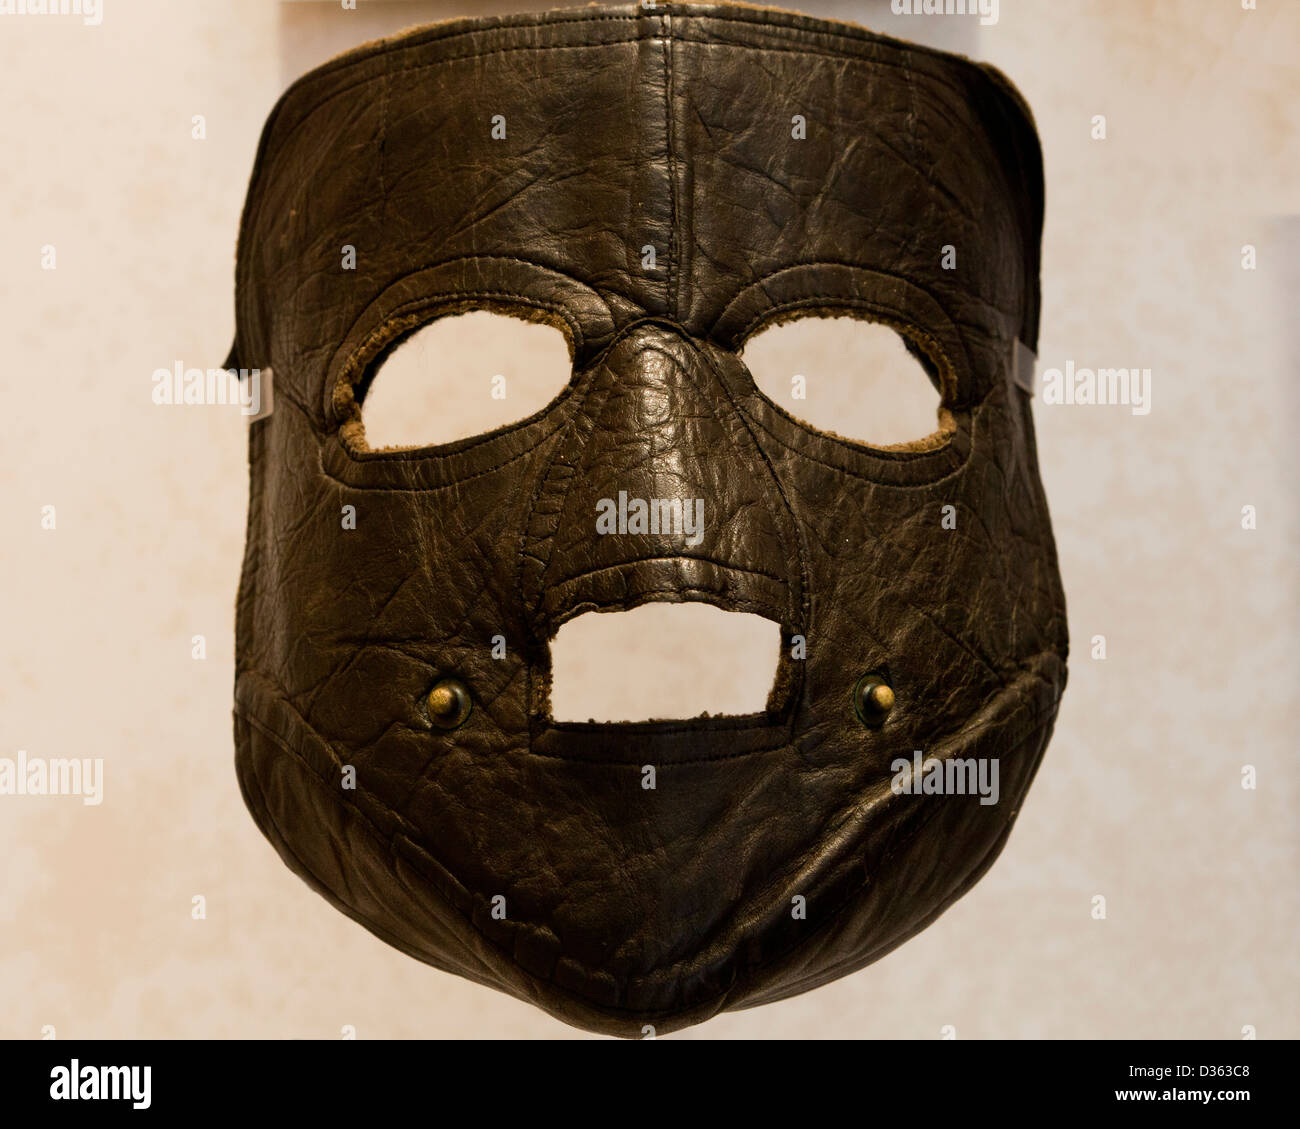 Leather face mask - Stock Image